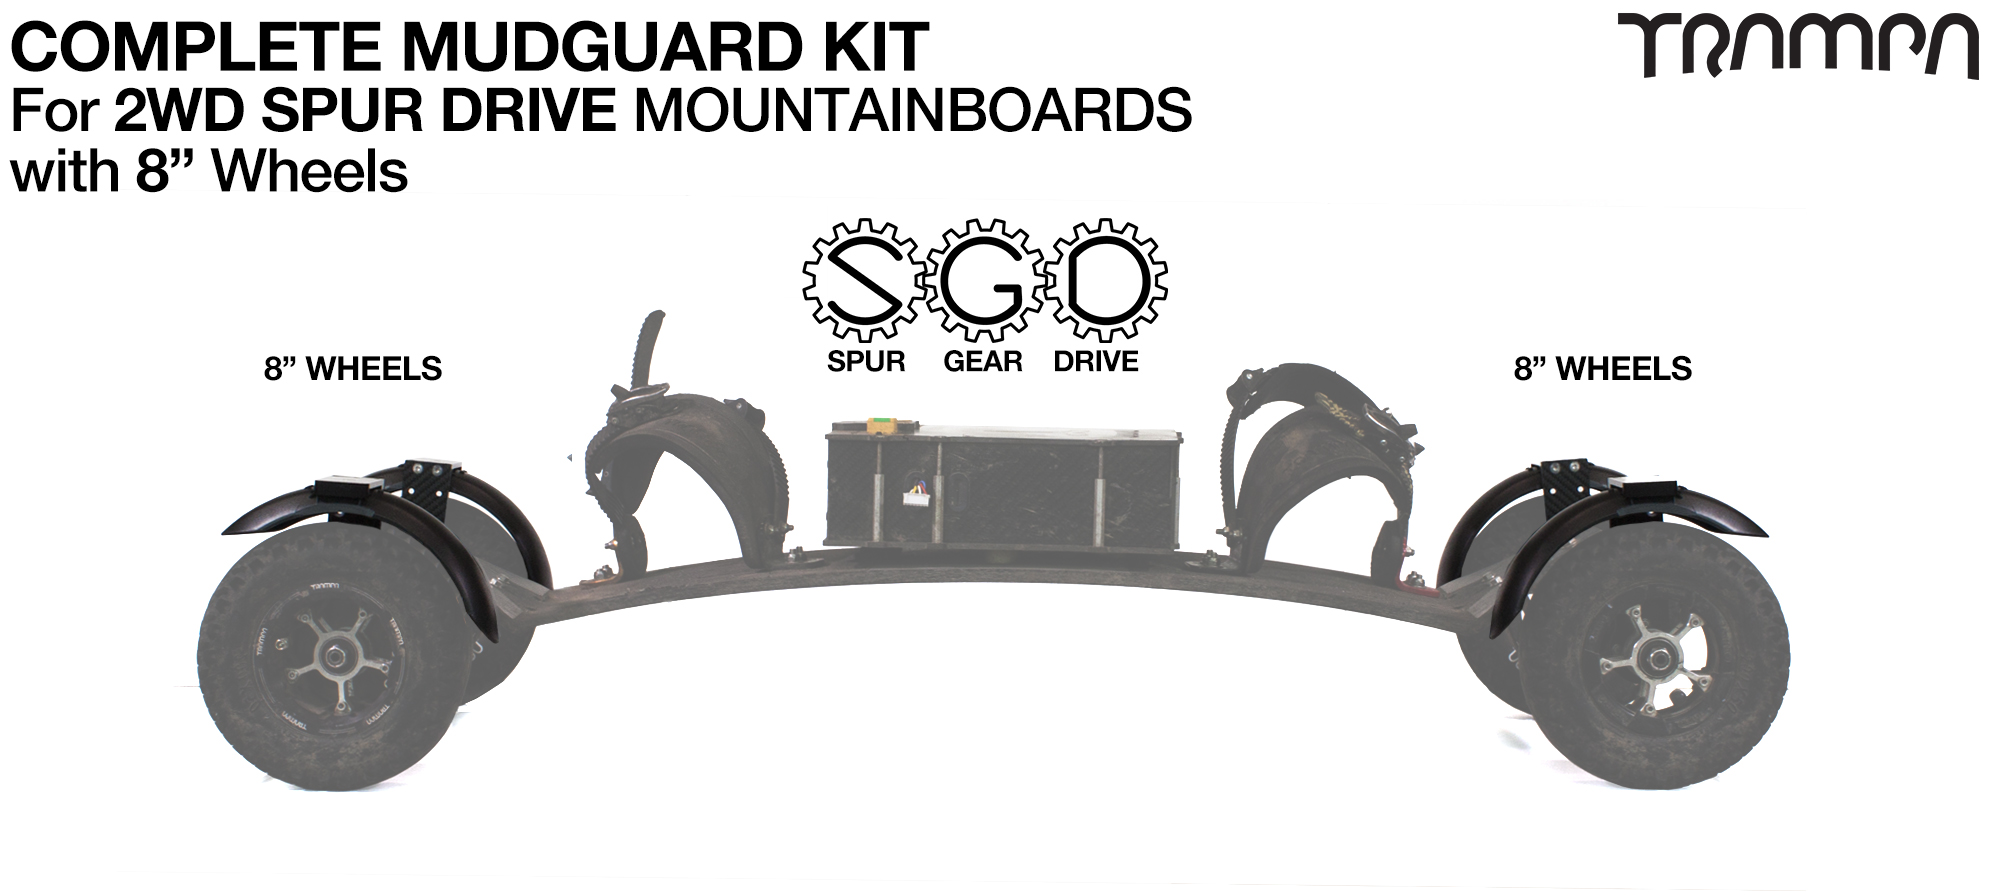 "Full Mudguard Kit for 2WD SPUR GEAR DRIVE Mountainboards - 8"" Wheels All round"